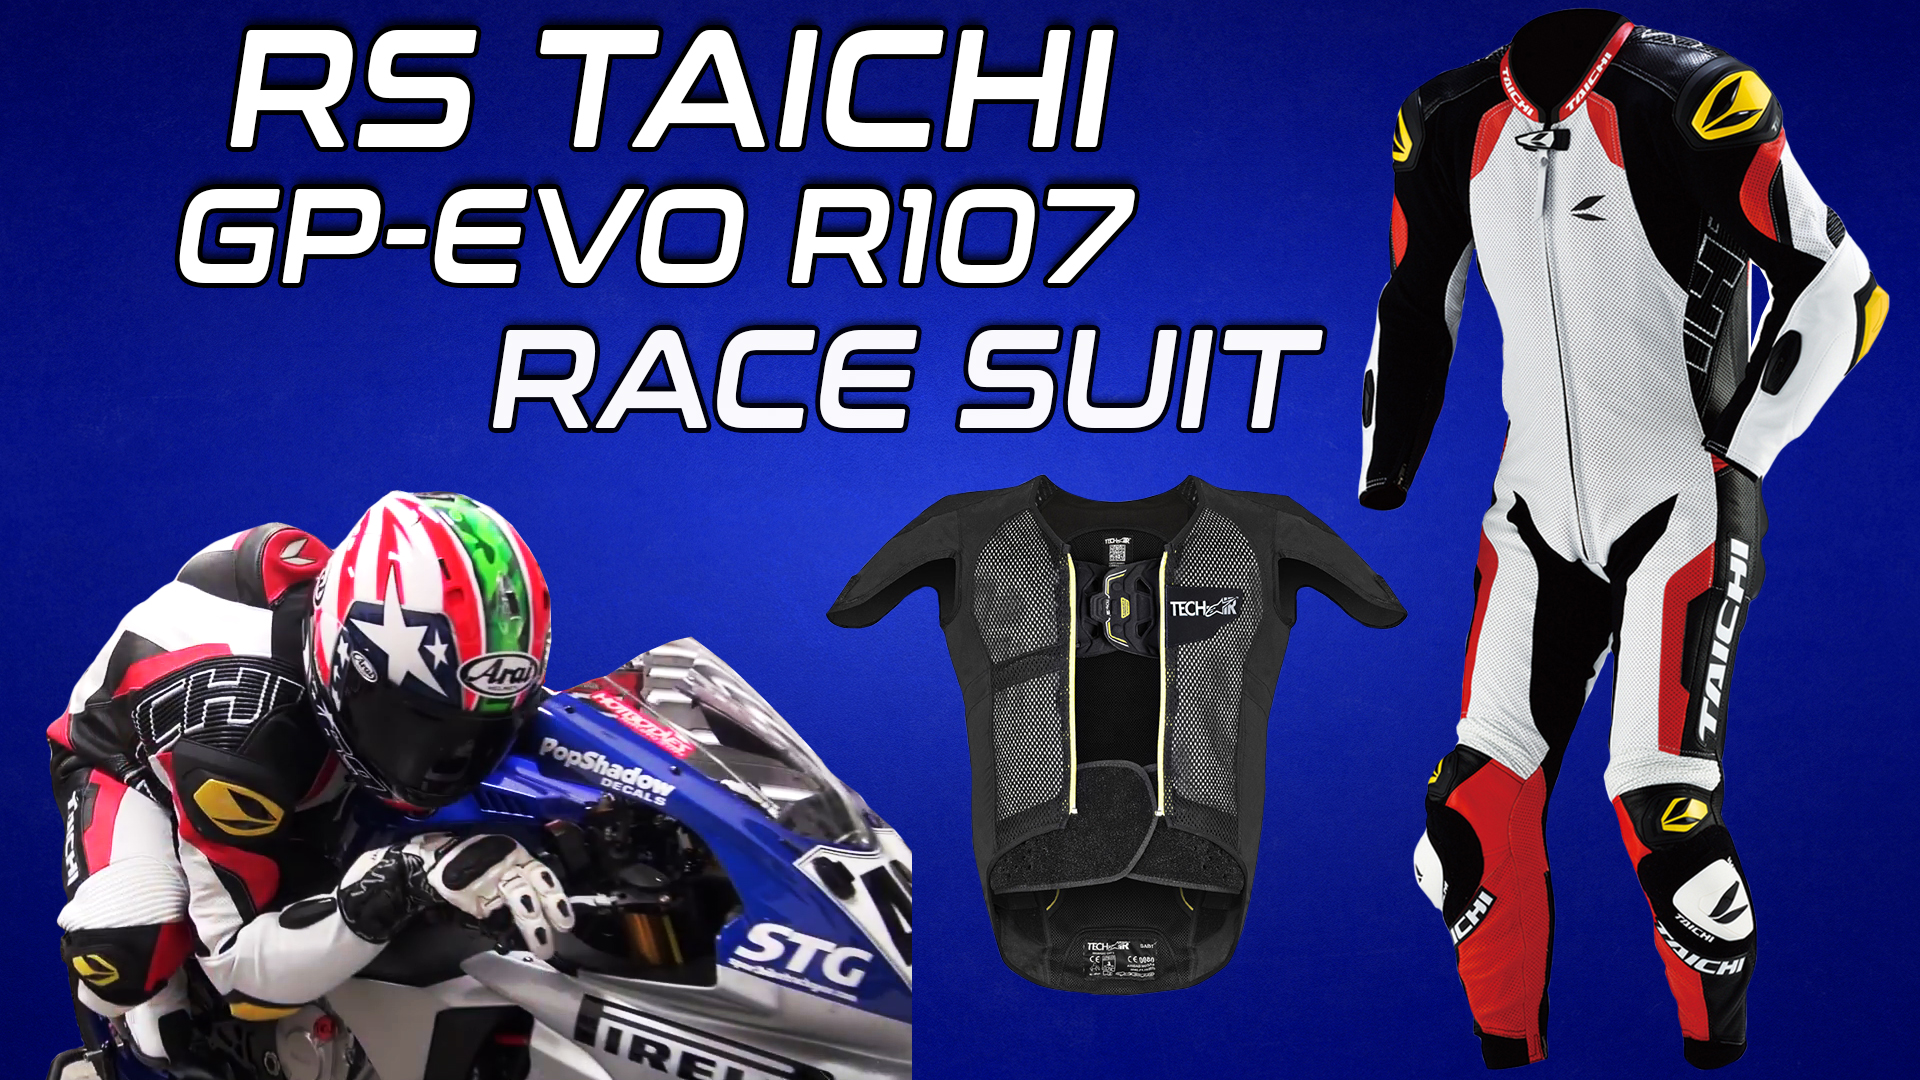 RS Taichi GP-EVO R107 Race Suit Tech-Air Compatible